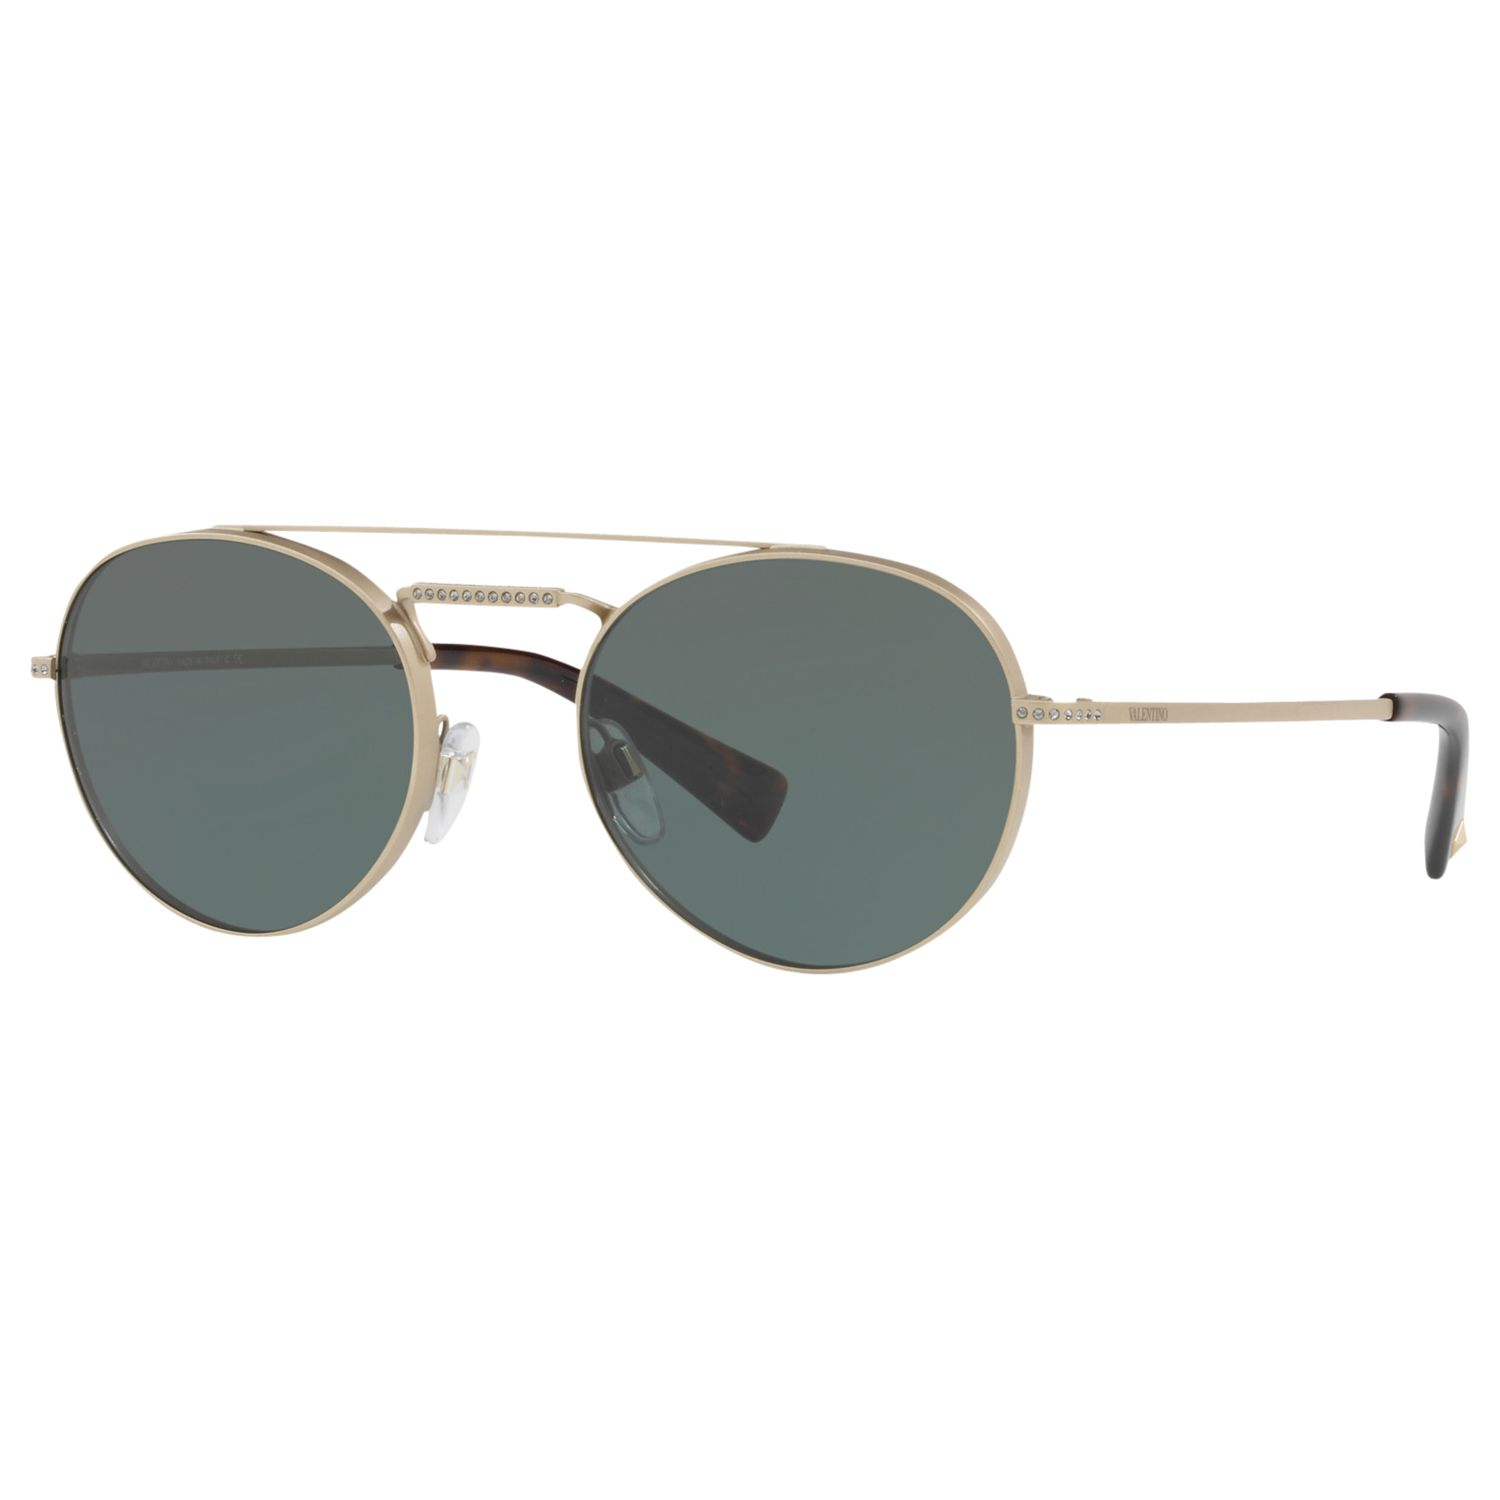 Valentino Valentino VA2004B Double Bridge Oval Sunglasses, Gold/Dark Green